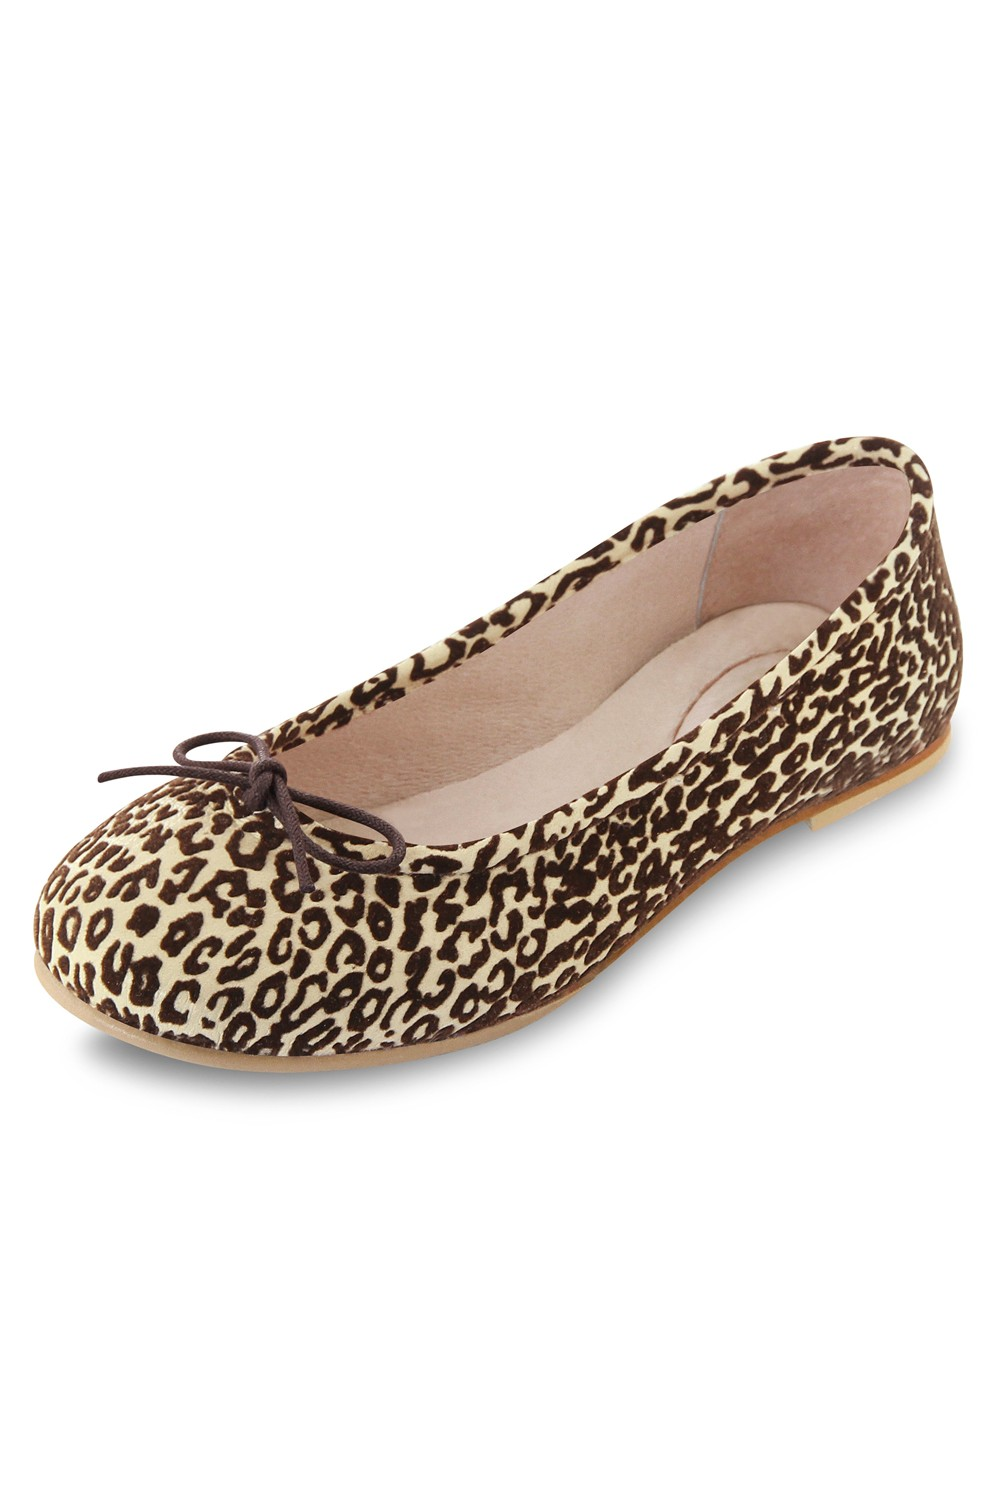 Arabella Leopard Girls Fashion Shoes